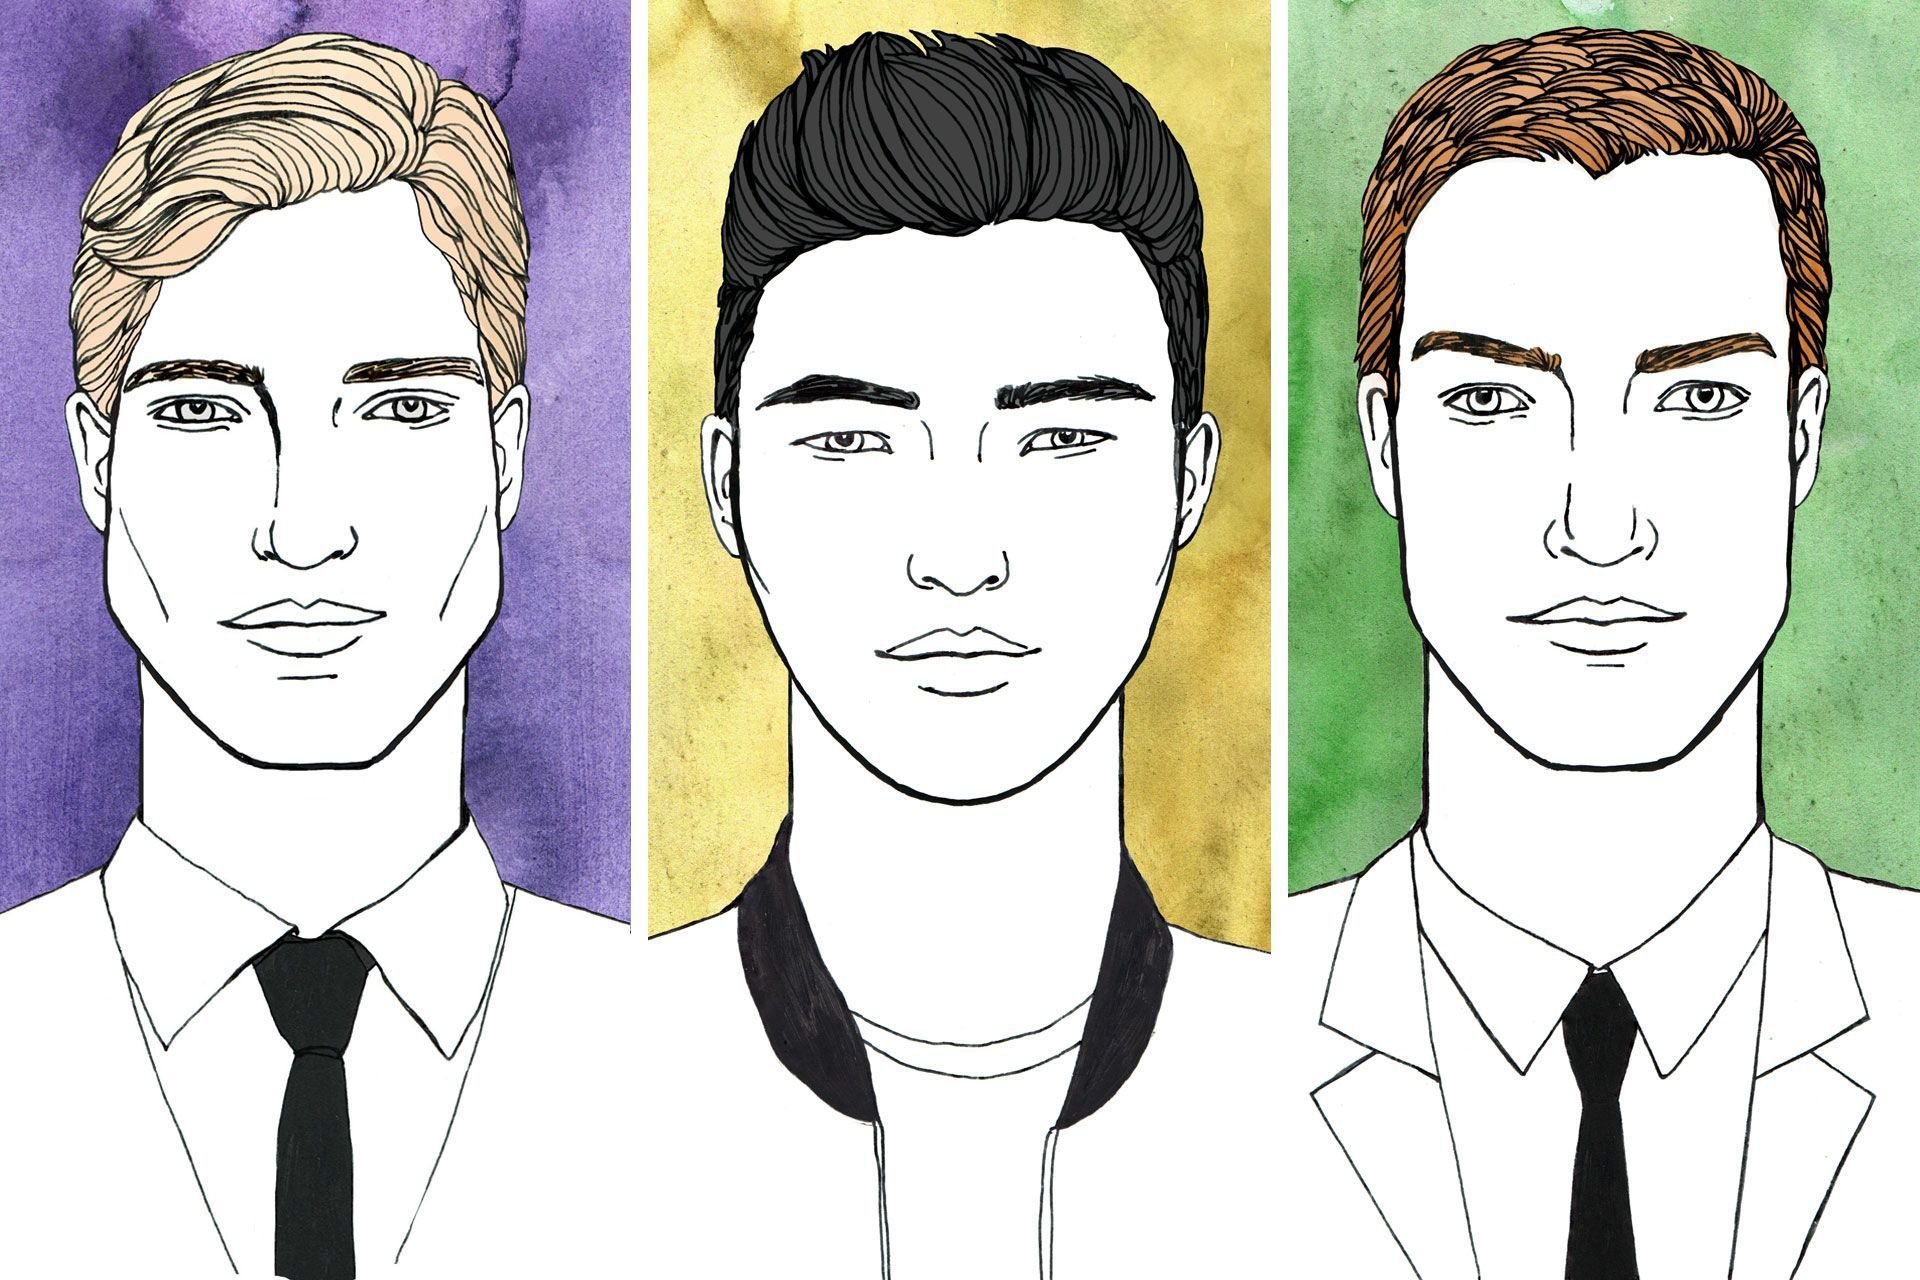 We Break Down The Best Men S Hairstyles To Suit Every Kind Of Face Shape No Matter Wh Oblong Face Hairstyles Face Shape Hairstyles Oblong Face Hairstyles Male